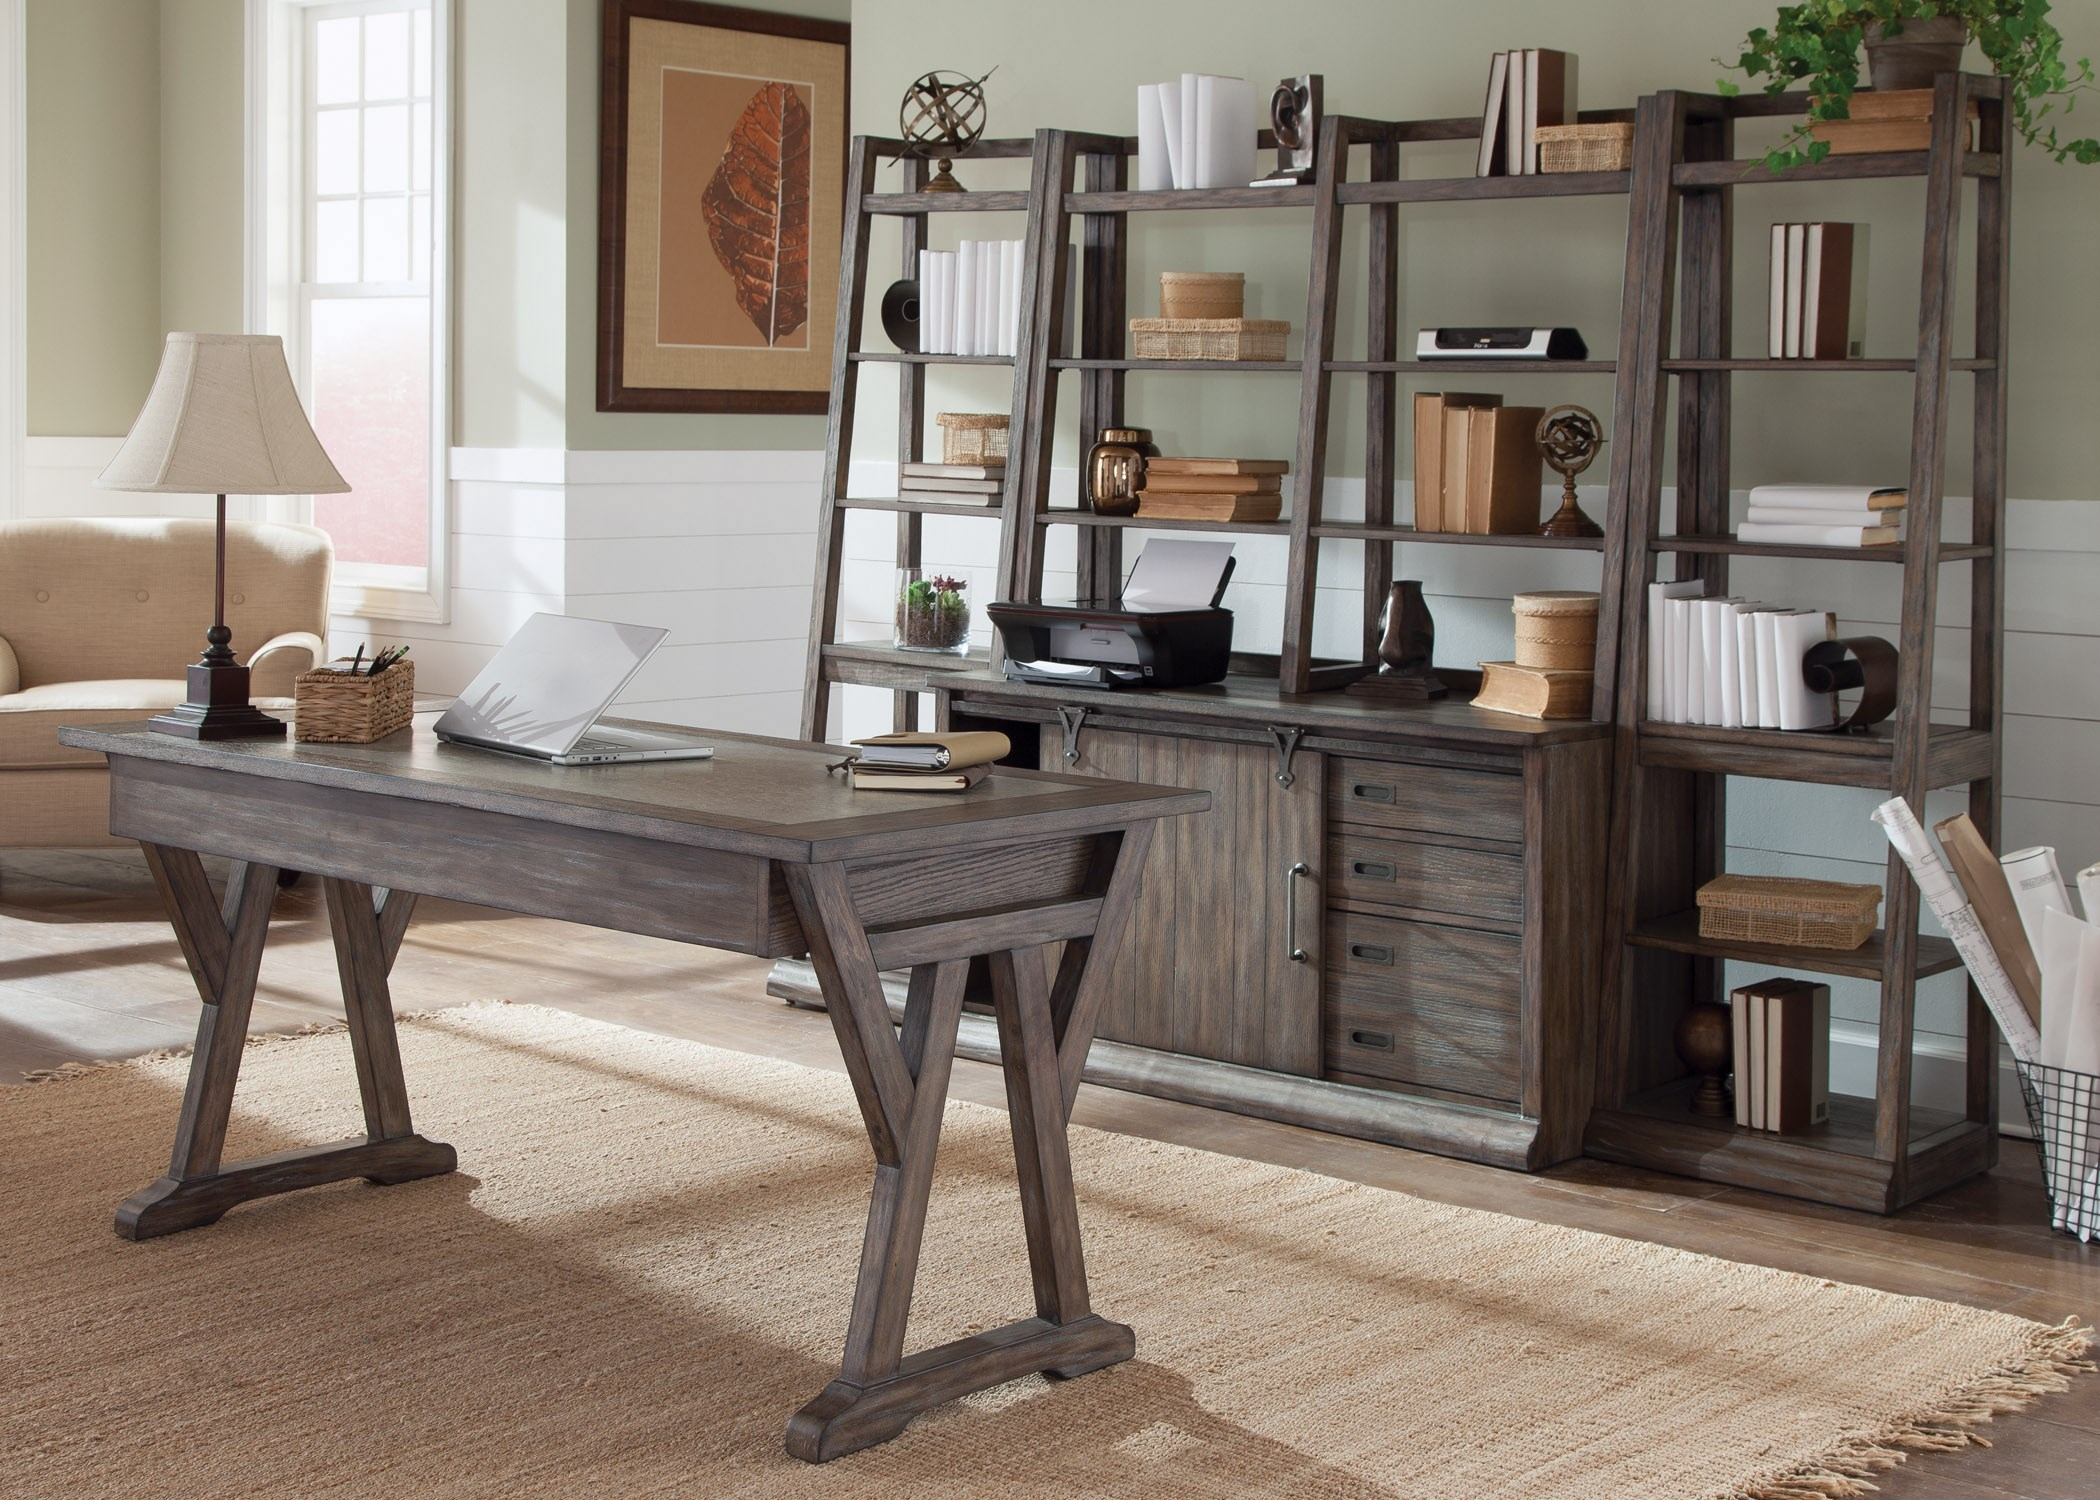 Liberty Furniture Stone Brook 5 Piece Desk With Distressed Wood Finish